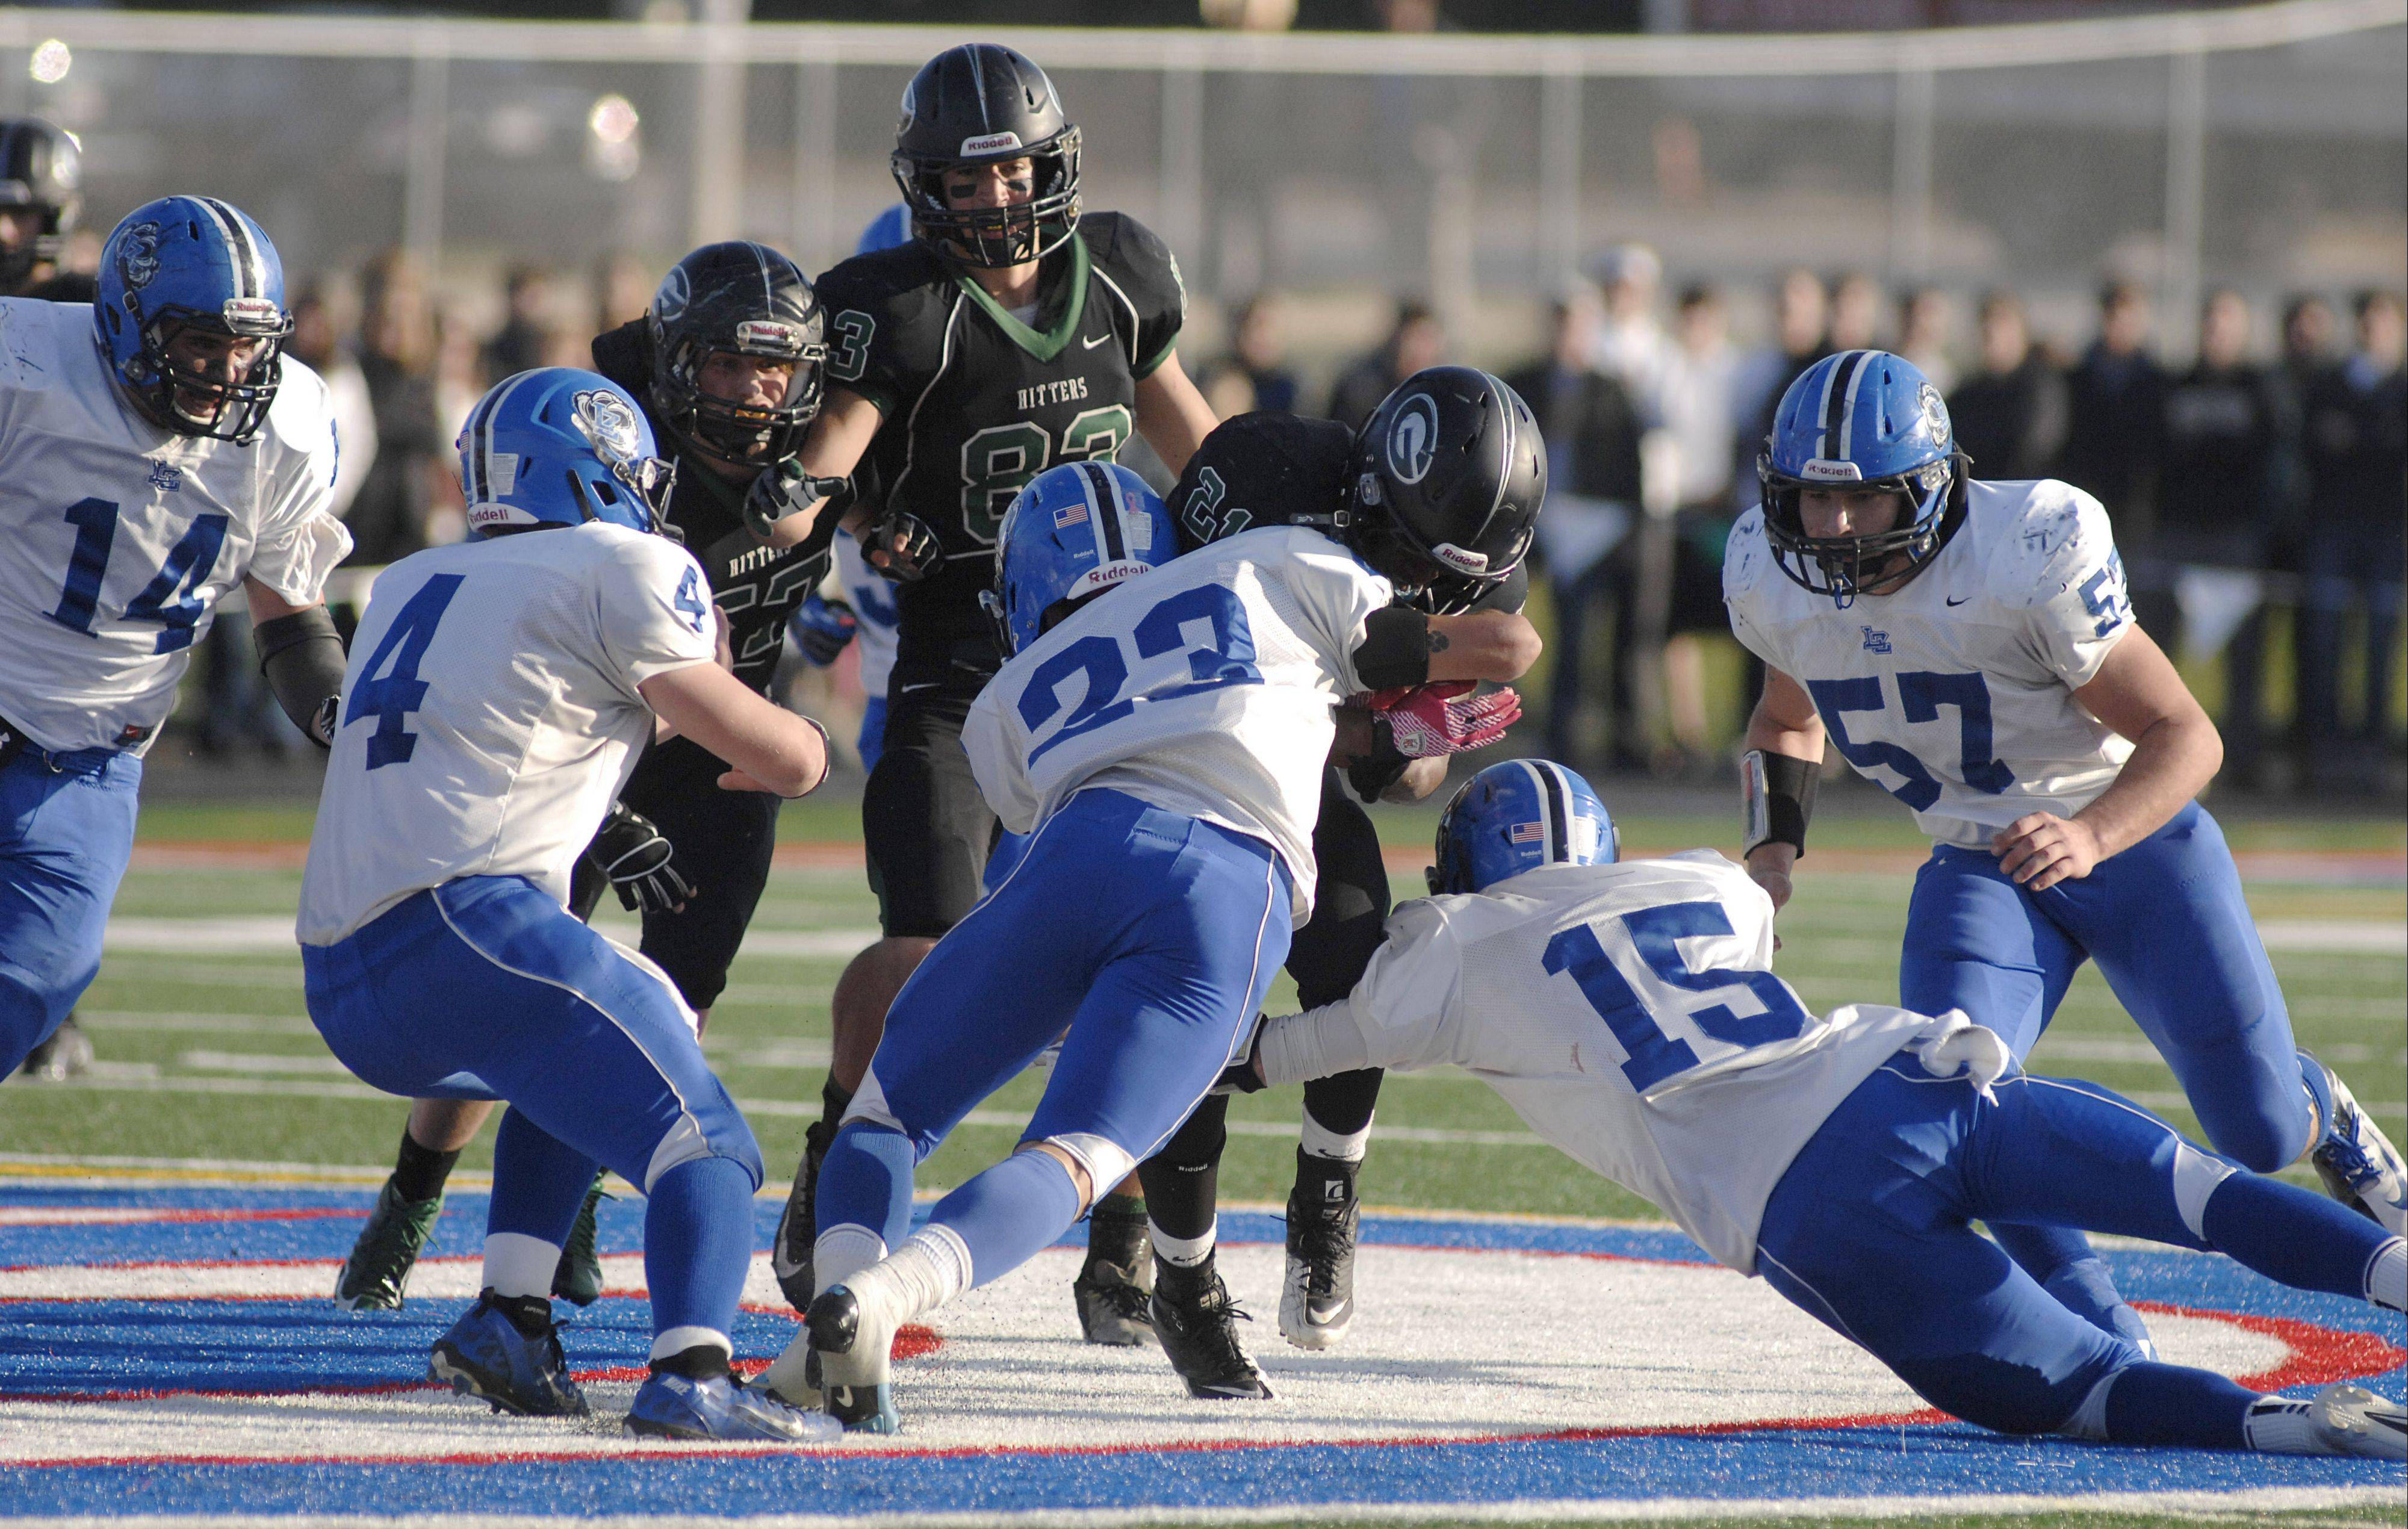 Glenbard West�s Deon Dumas is stopped by Lake Zurich�s Grant Soucy and Matt Moon in the third quarter on Saturday.